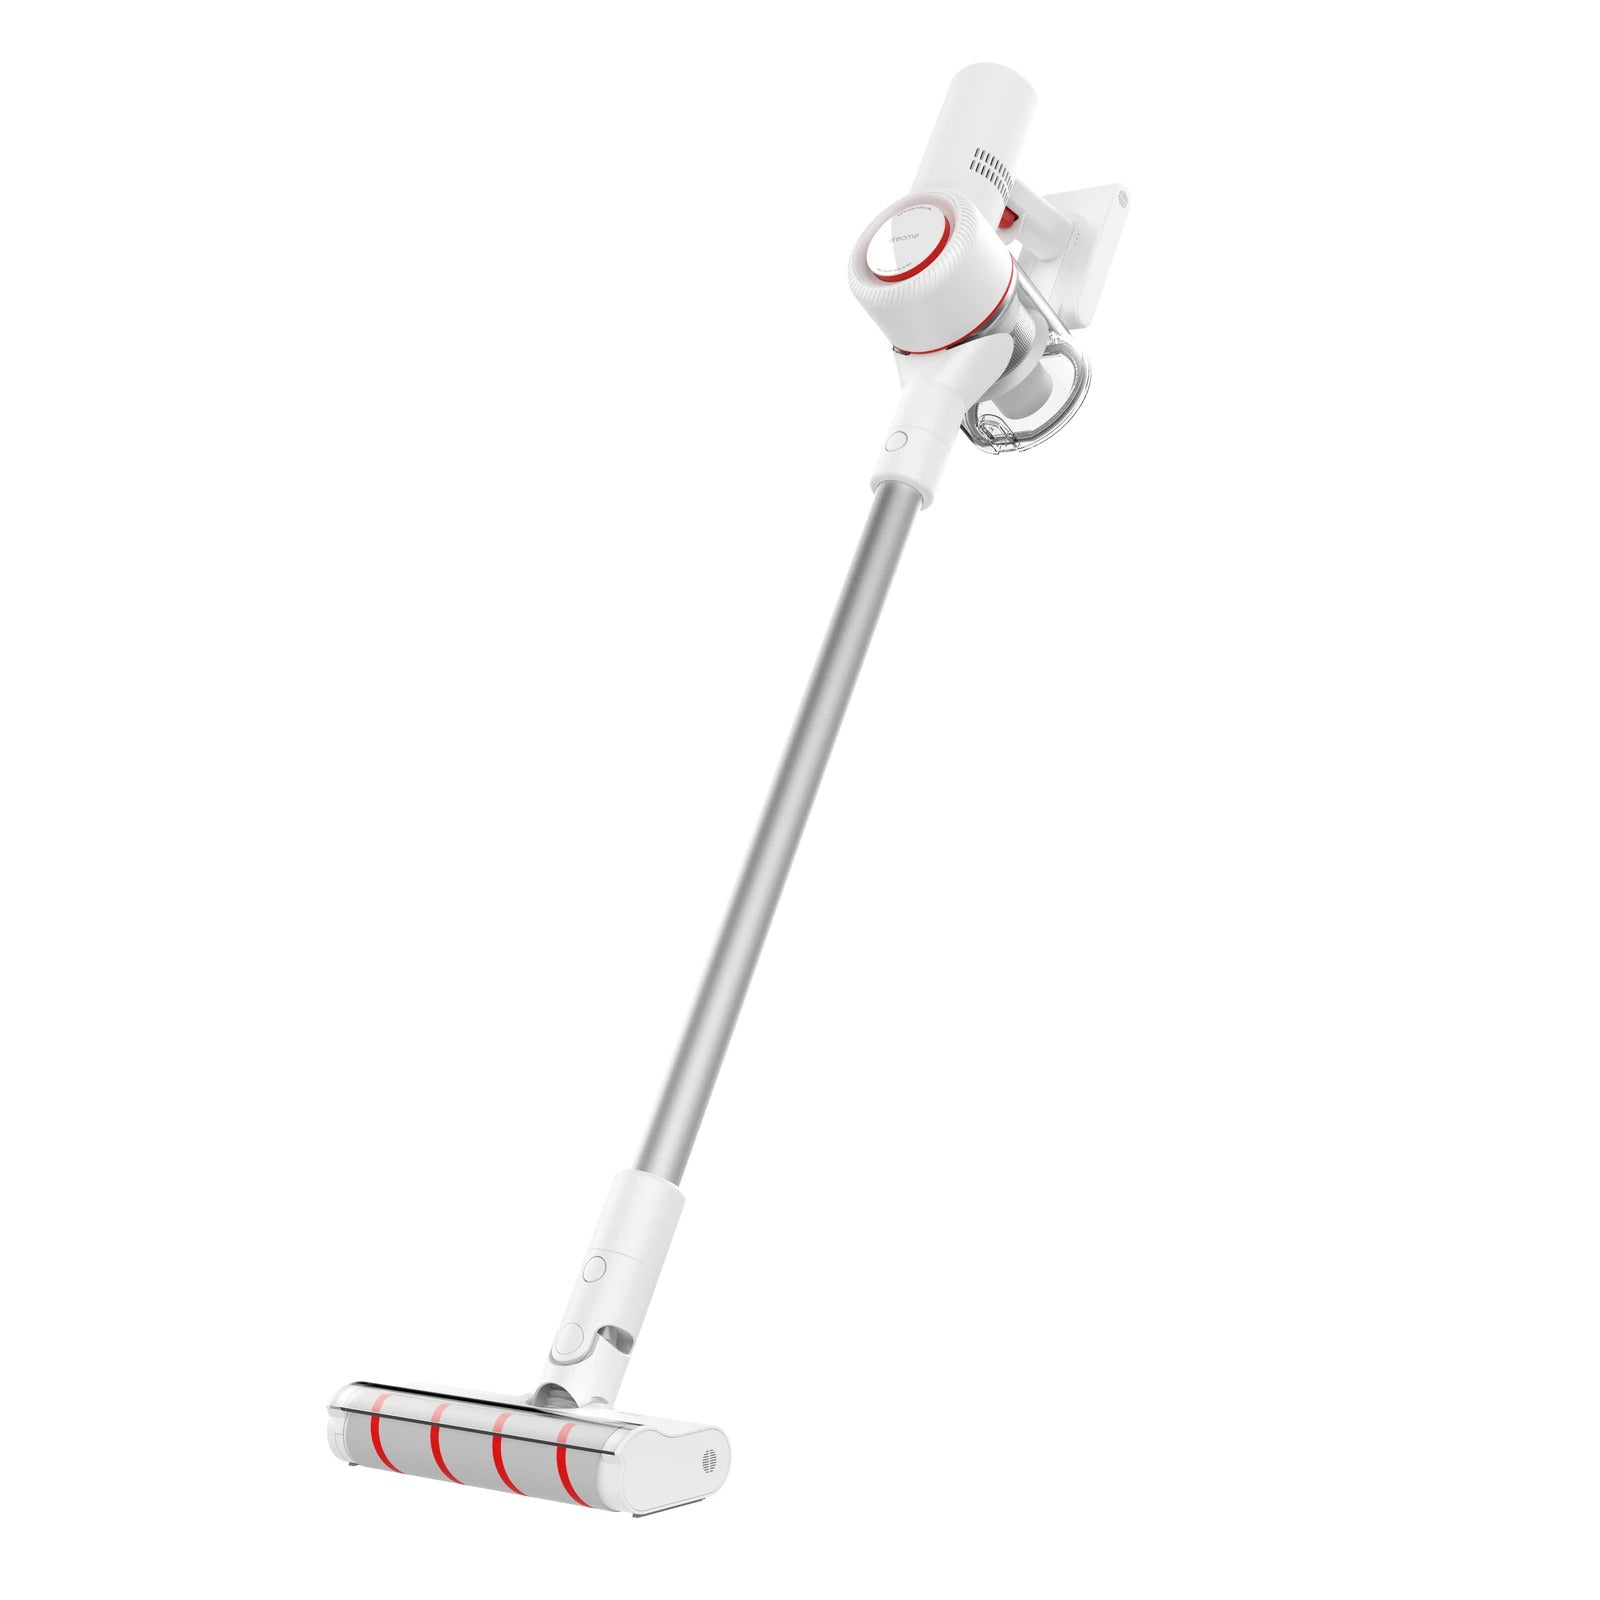 Dreame V9 cordless vacuum cleaner specification